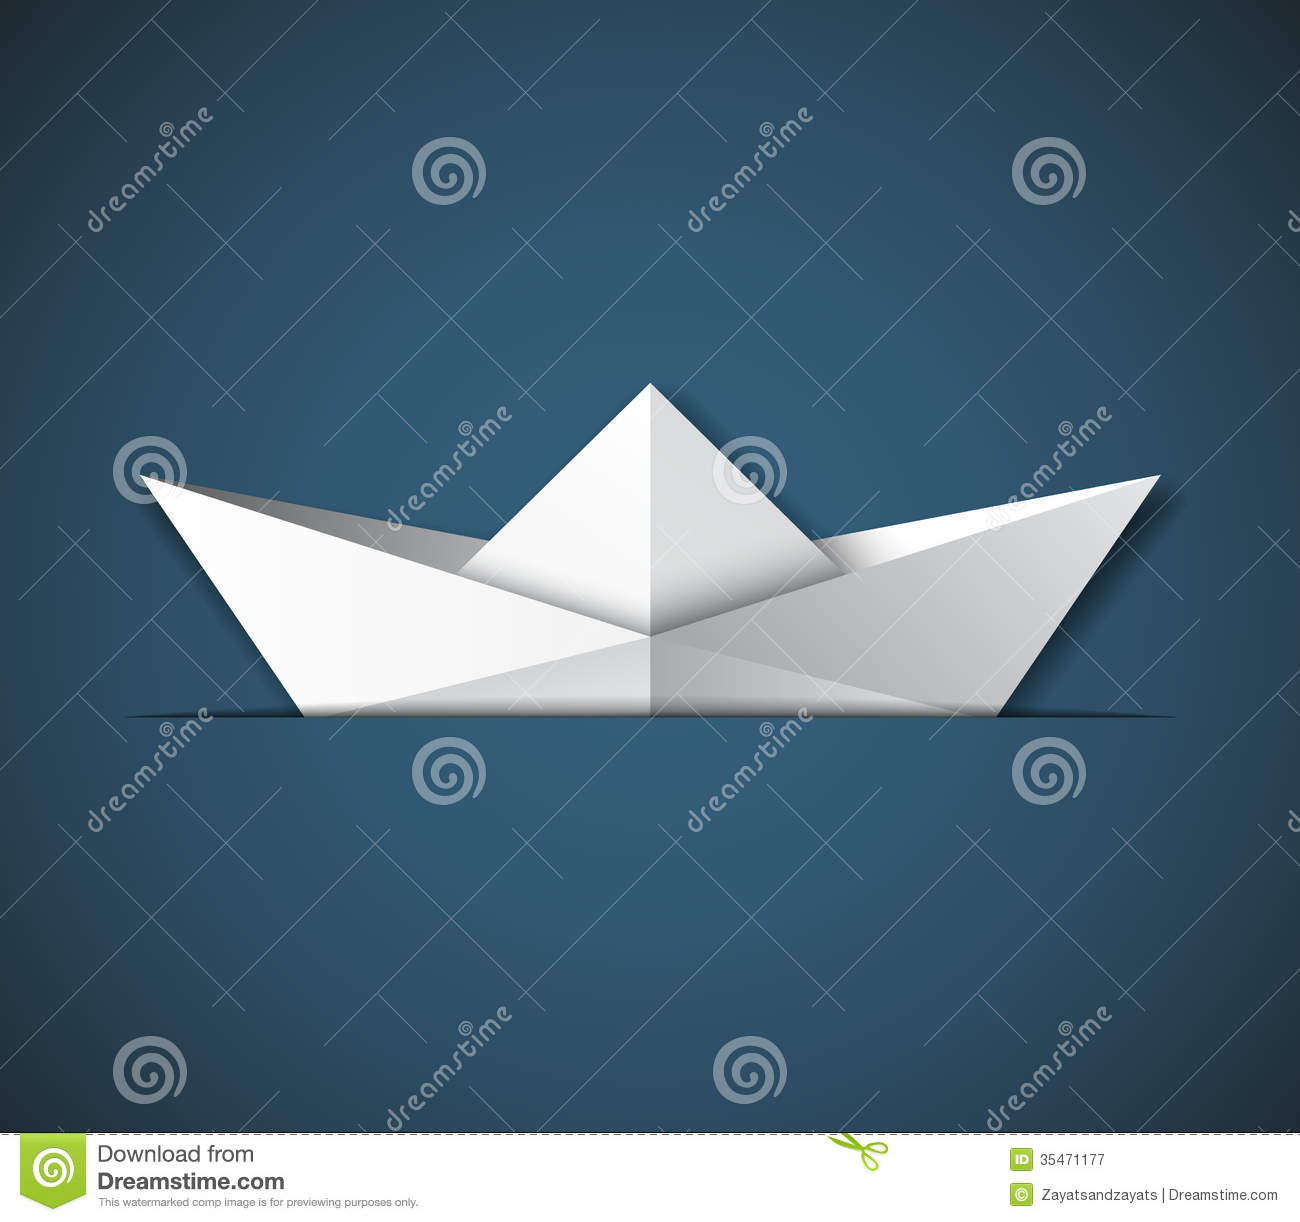 Origami ship stock vector. Illustration of voyage, gray - 35471177